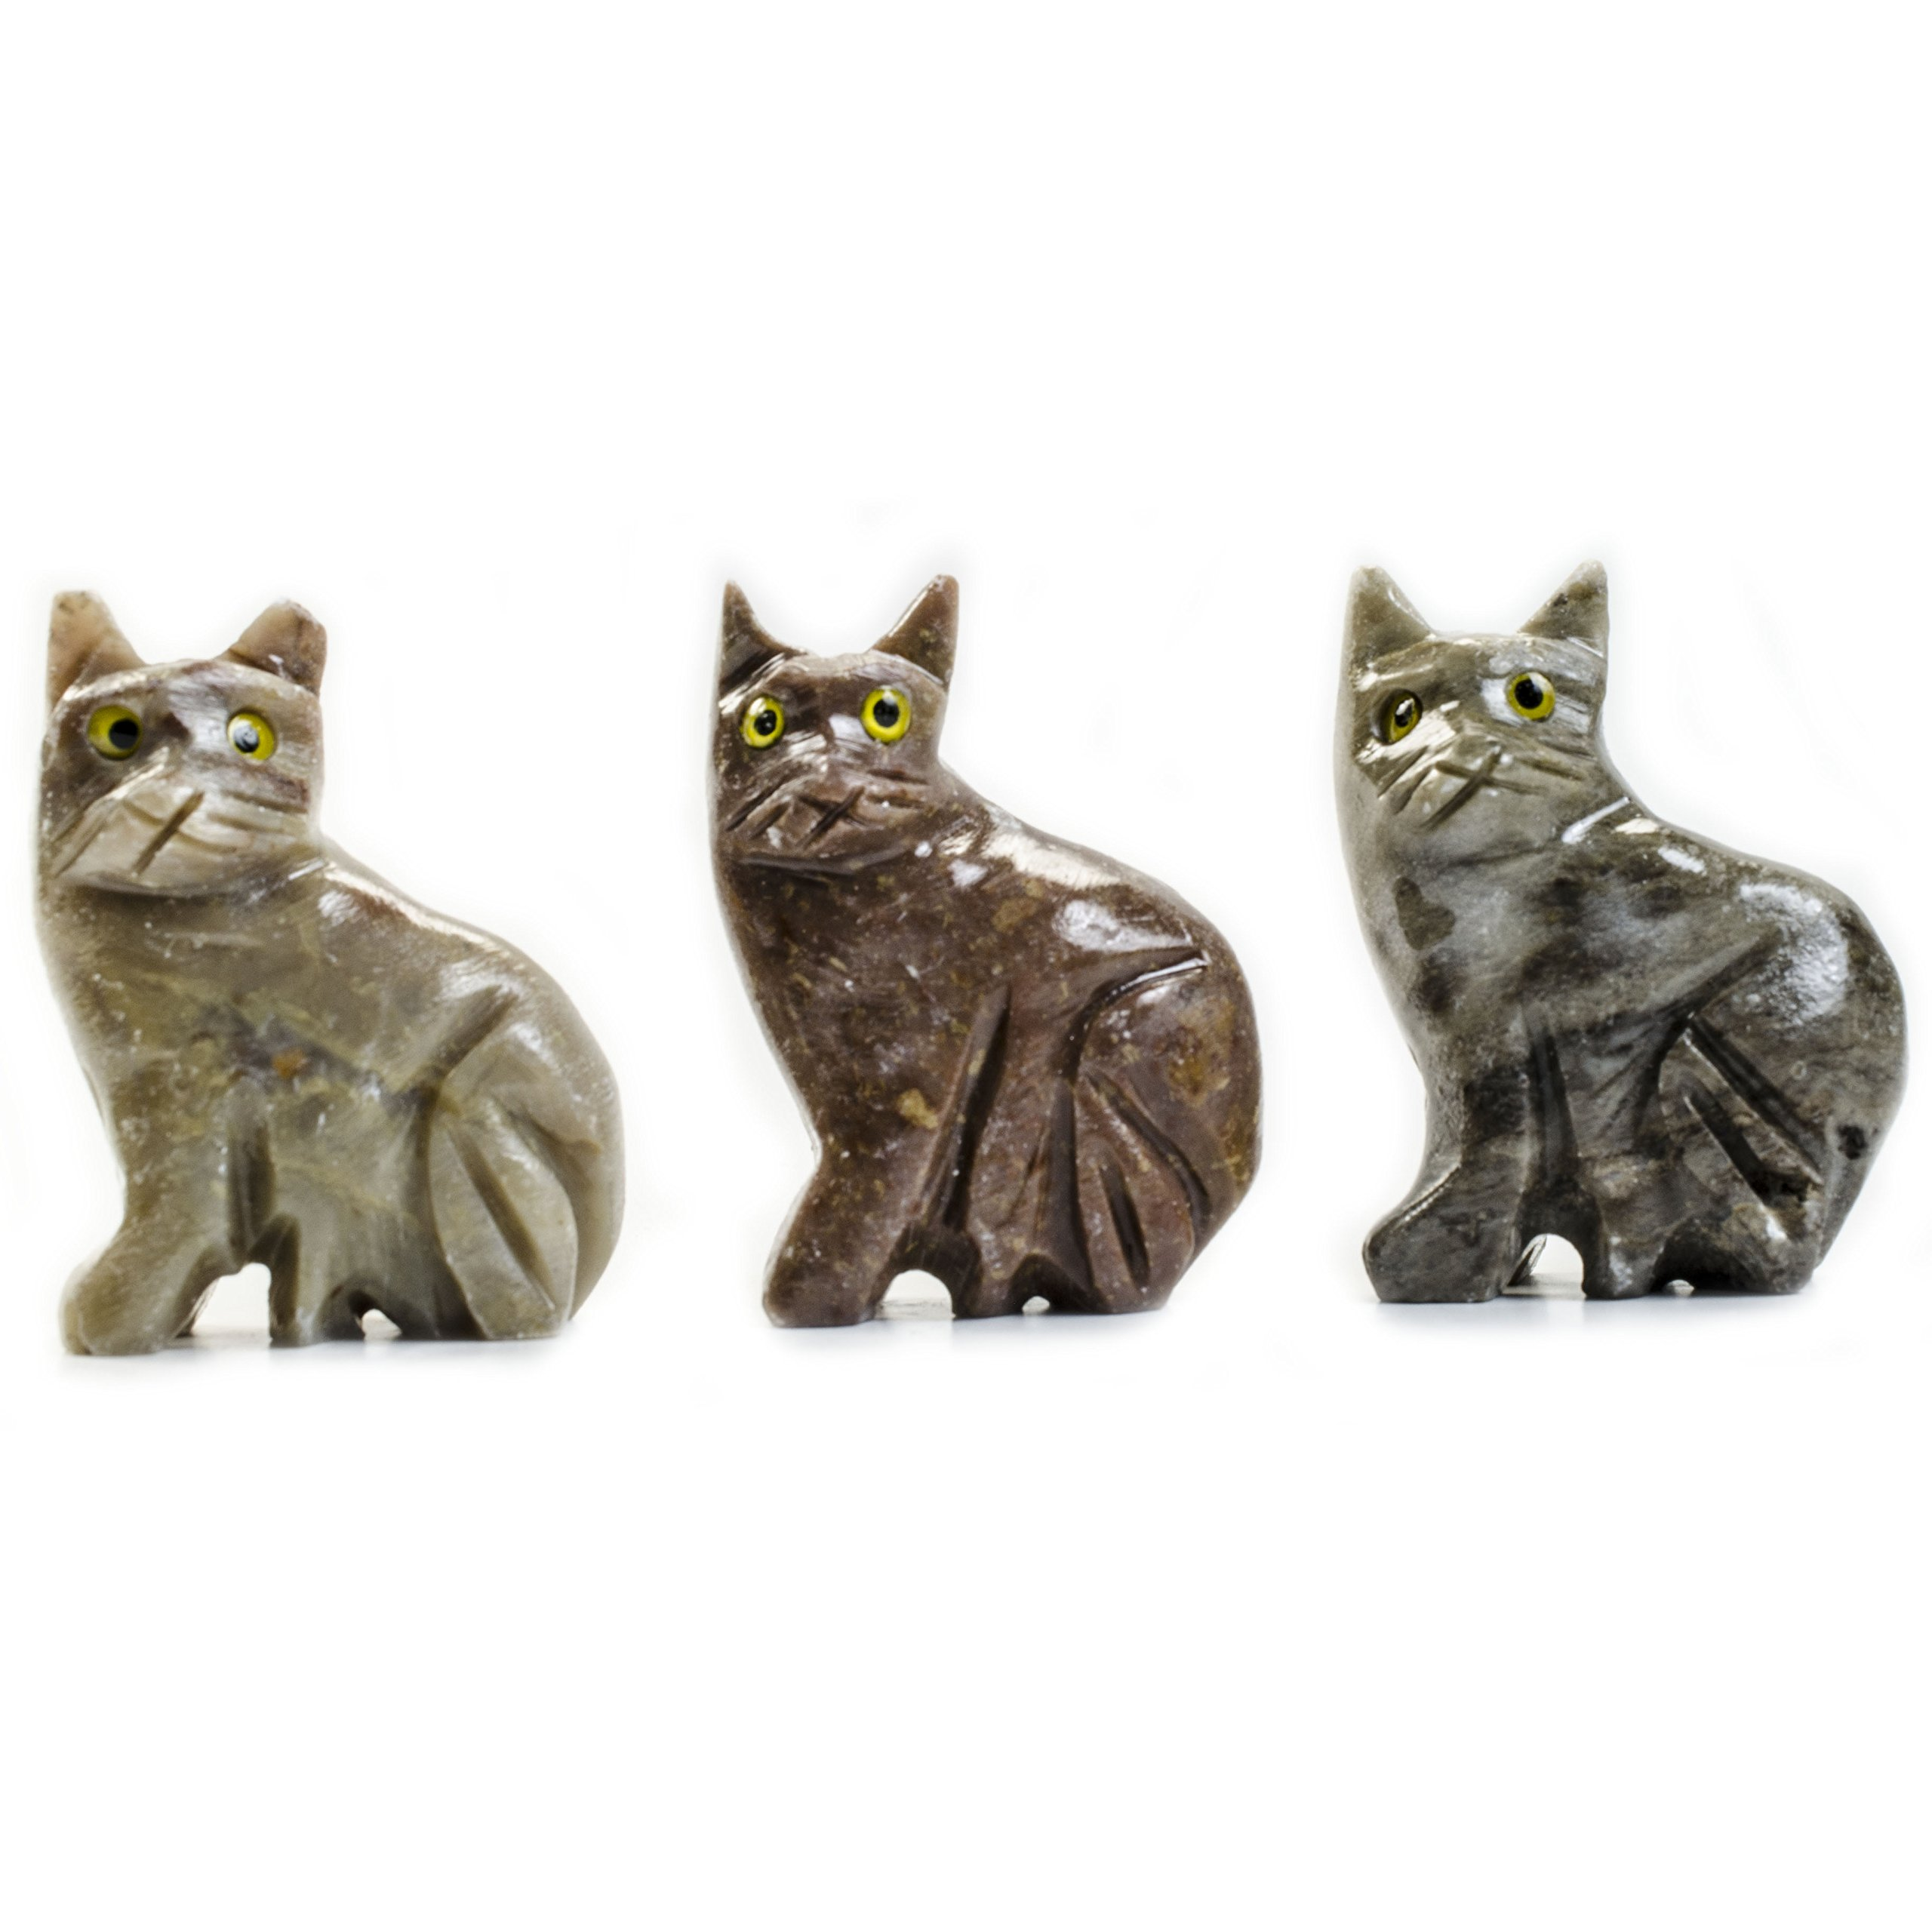 Digging Dolls : 10 pcs Artisan Cat Collectable Animal Figurine - Party Favors, Stocking Stuffers, Gifts, Collecting and More!